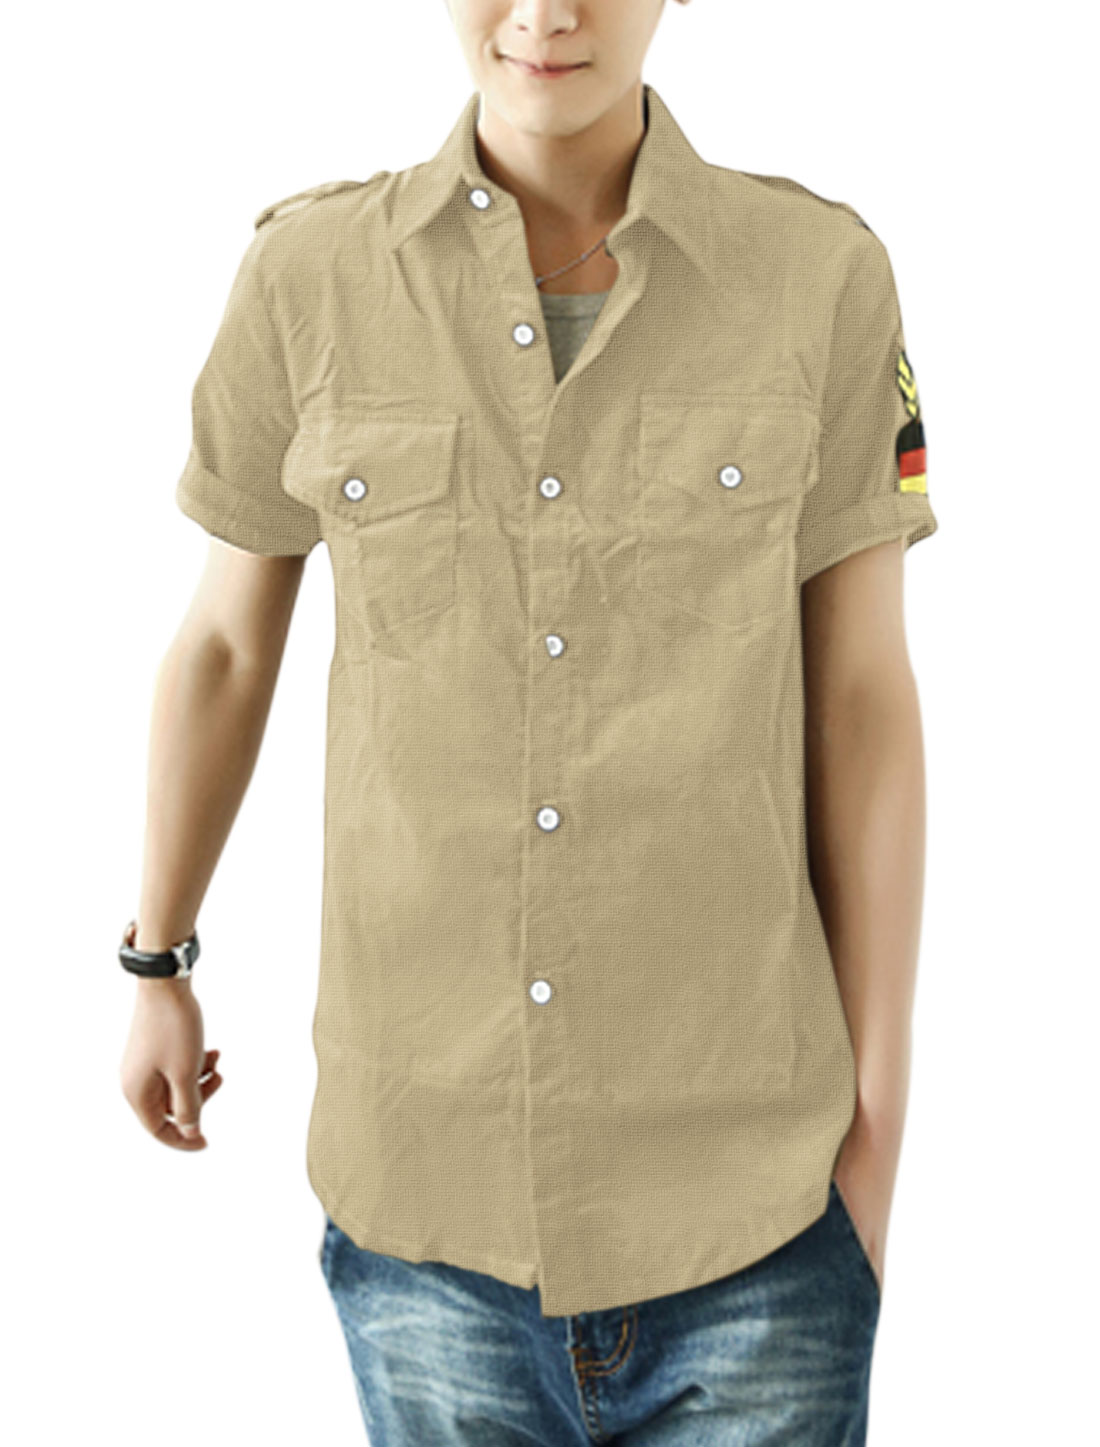 Men Point Collar Rank Military Army Applique Decor Shirt Khaki M